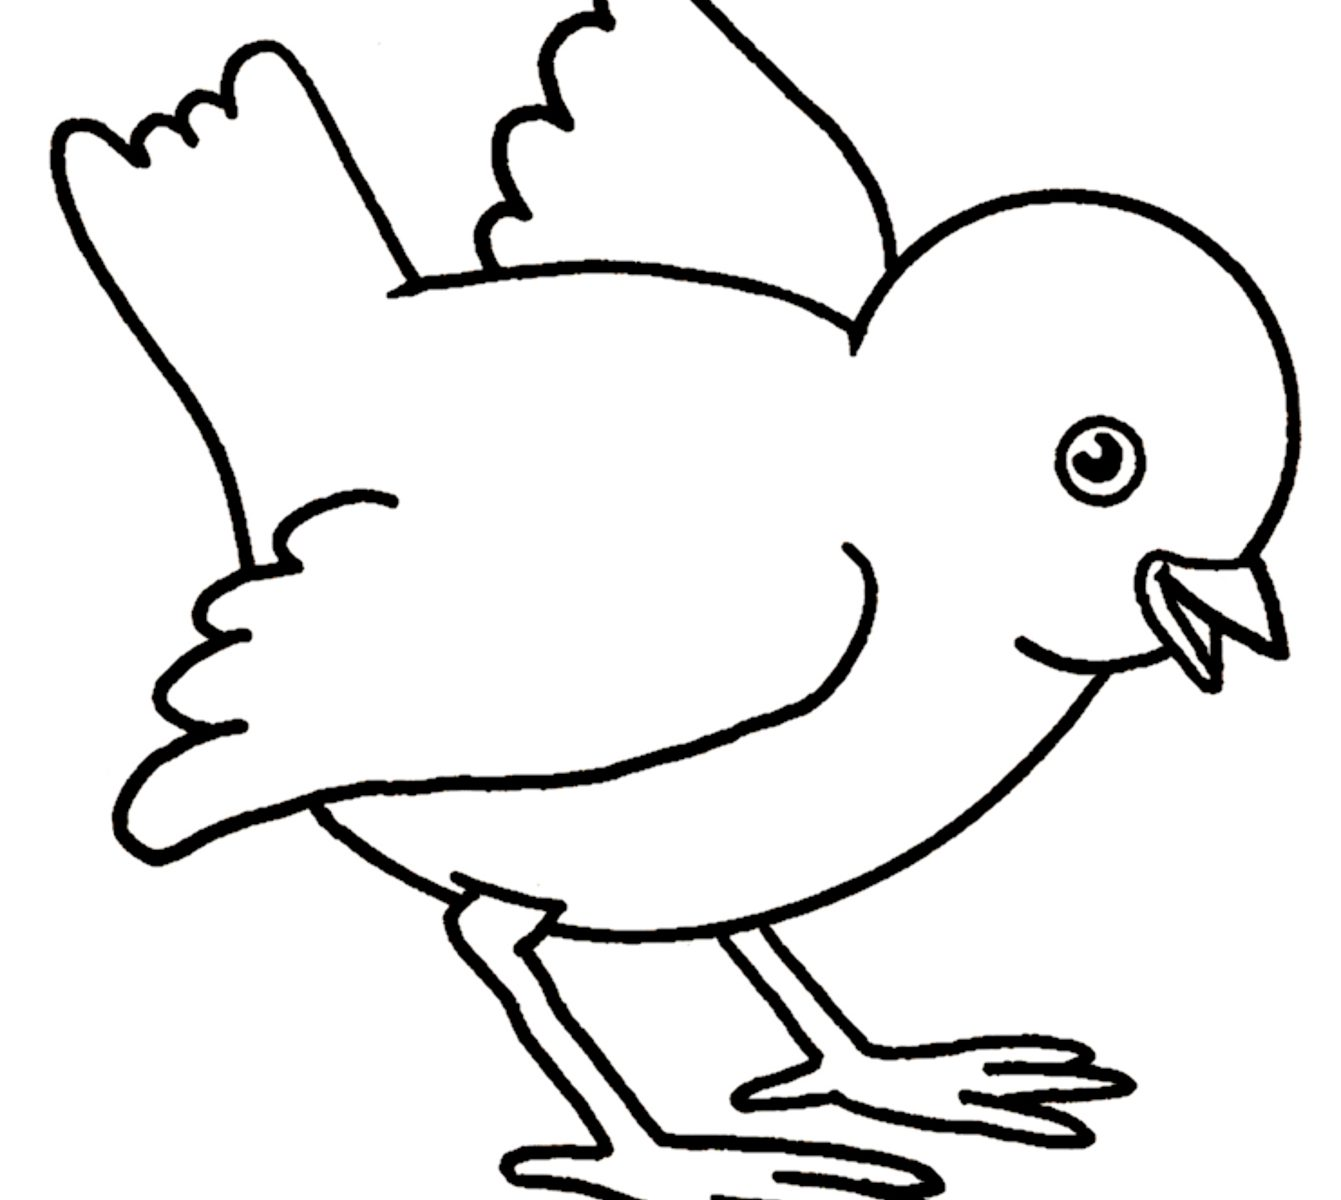 Chicken Drawing For Kids at GetDrawings.com   Free for personal use ...